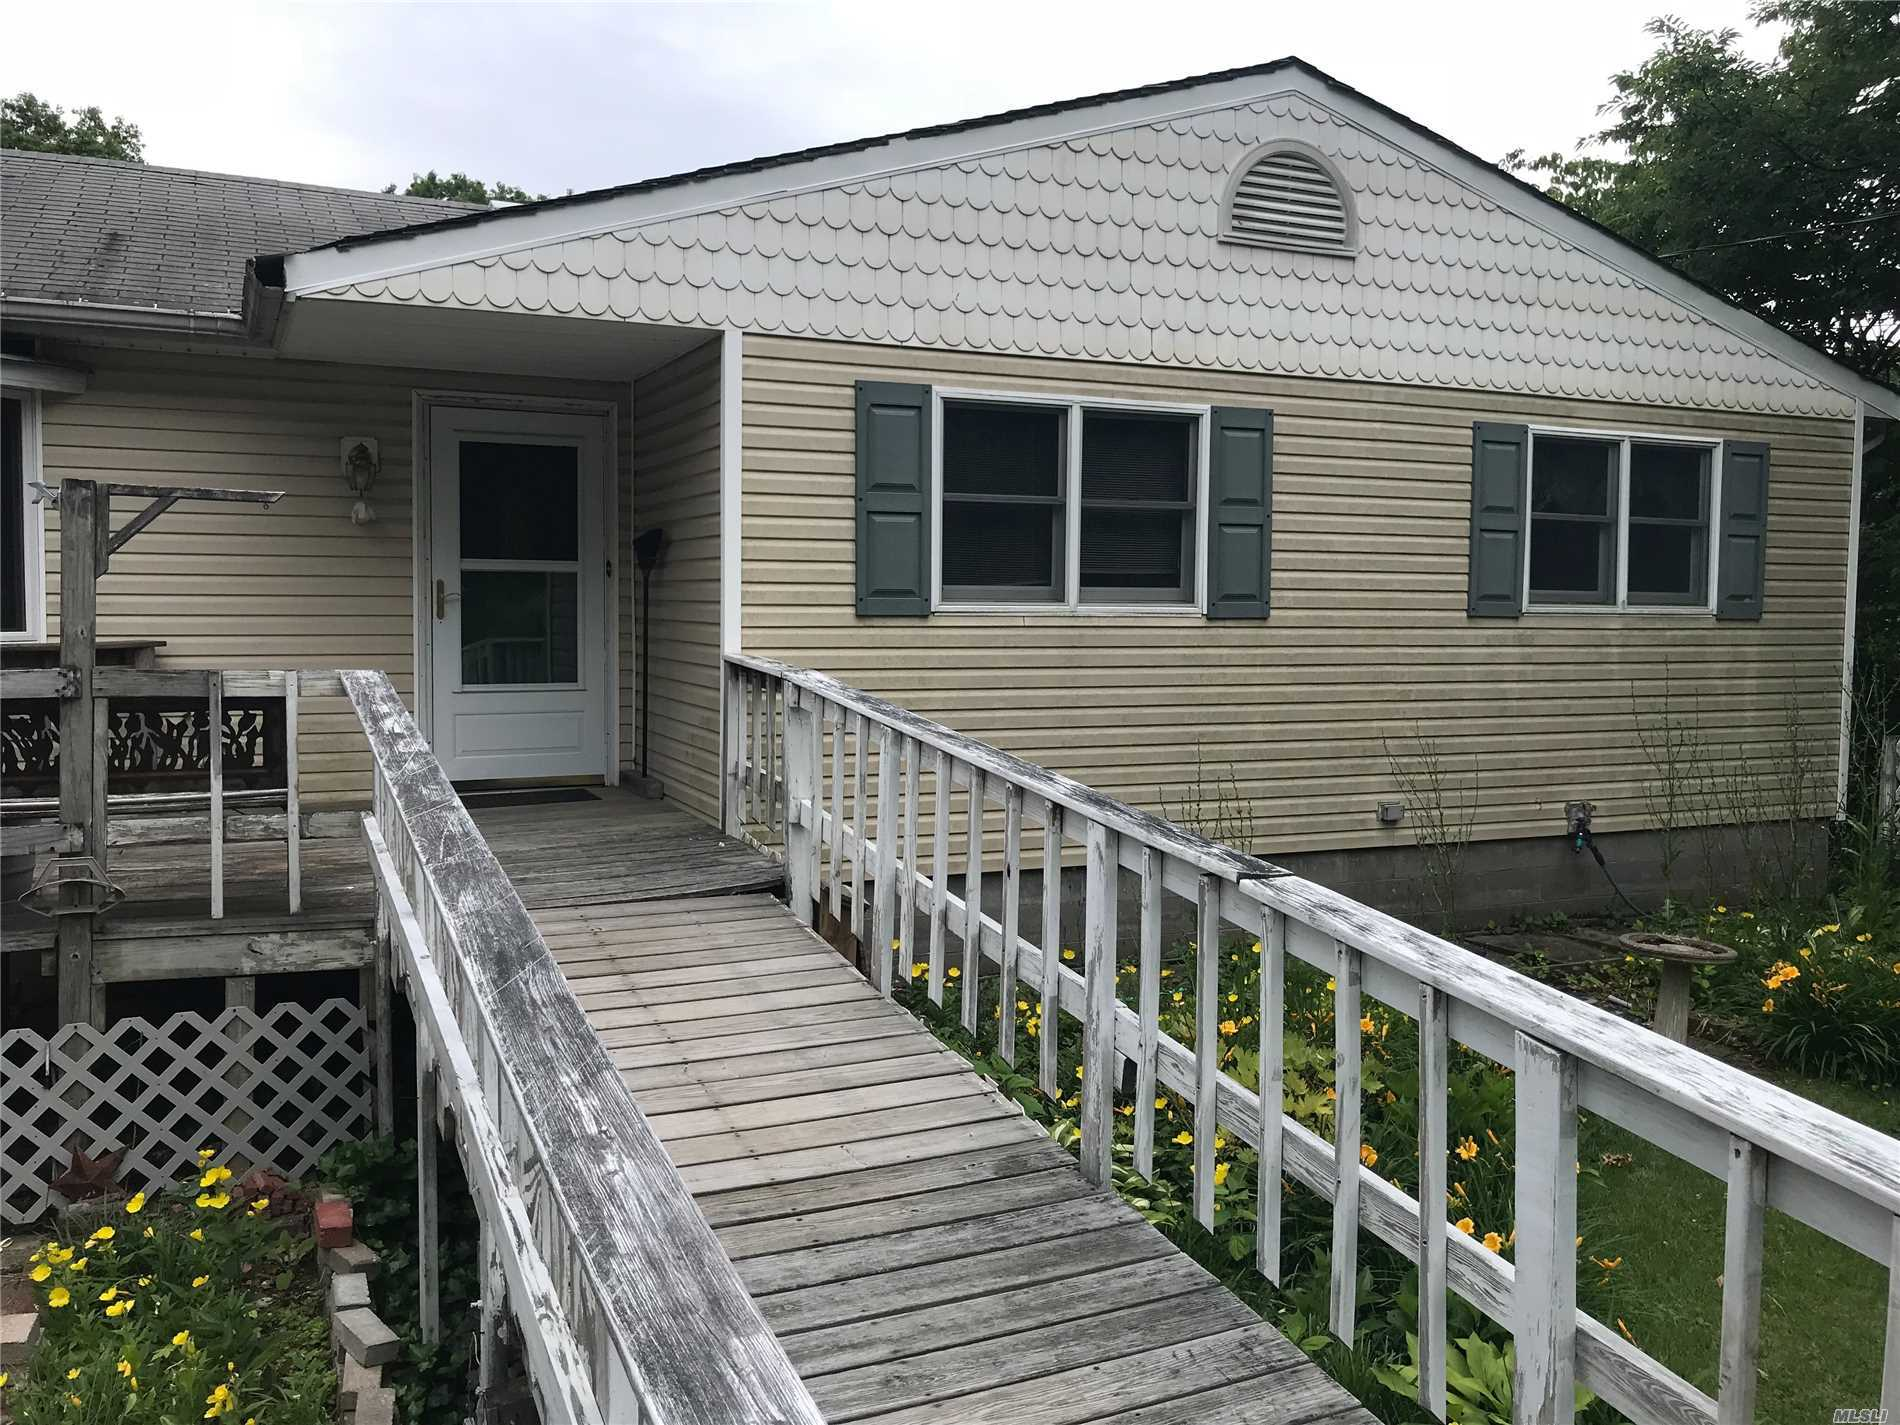 3 Bedroom Ranch In The Hauppauge School District. 1/2 Acre To Be Maintained And Mowed By The Homeowner During The Summer Months. House Is Being Cleaned Out.